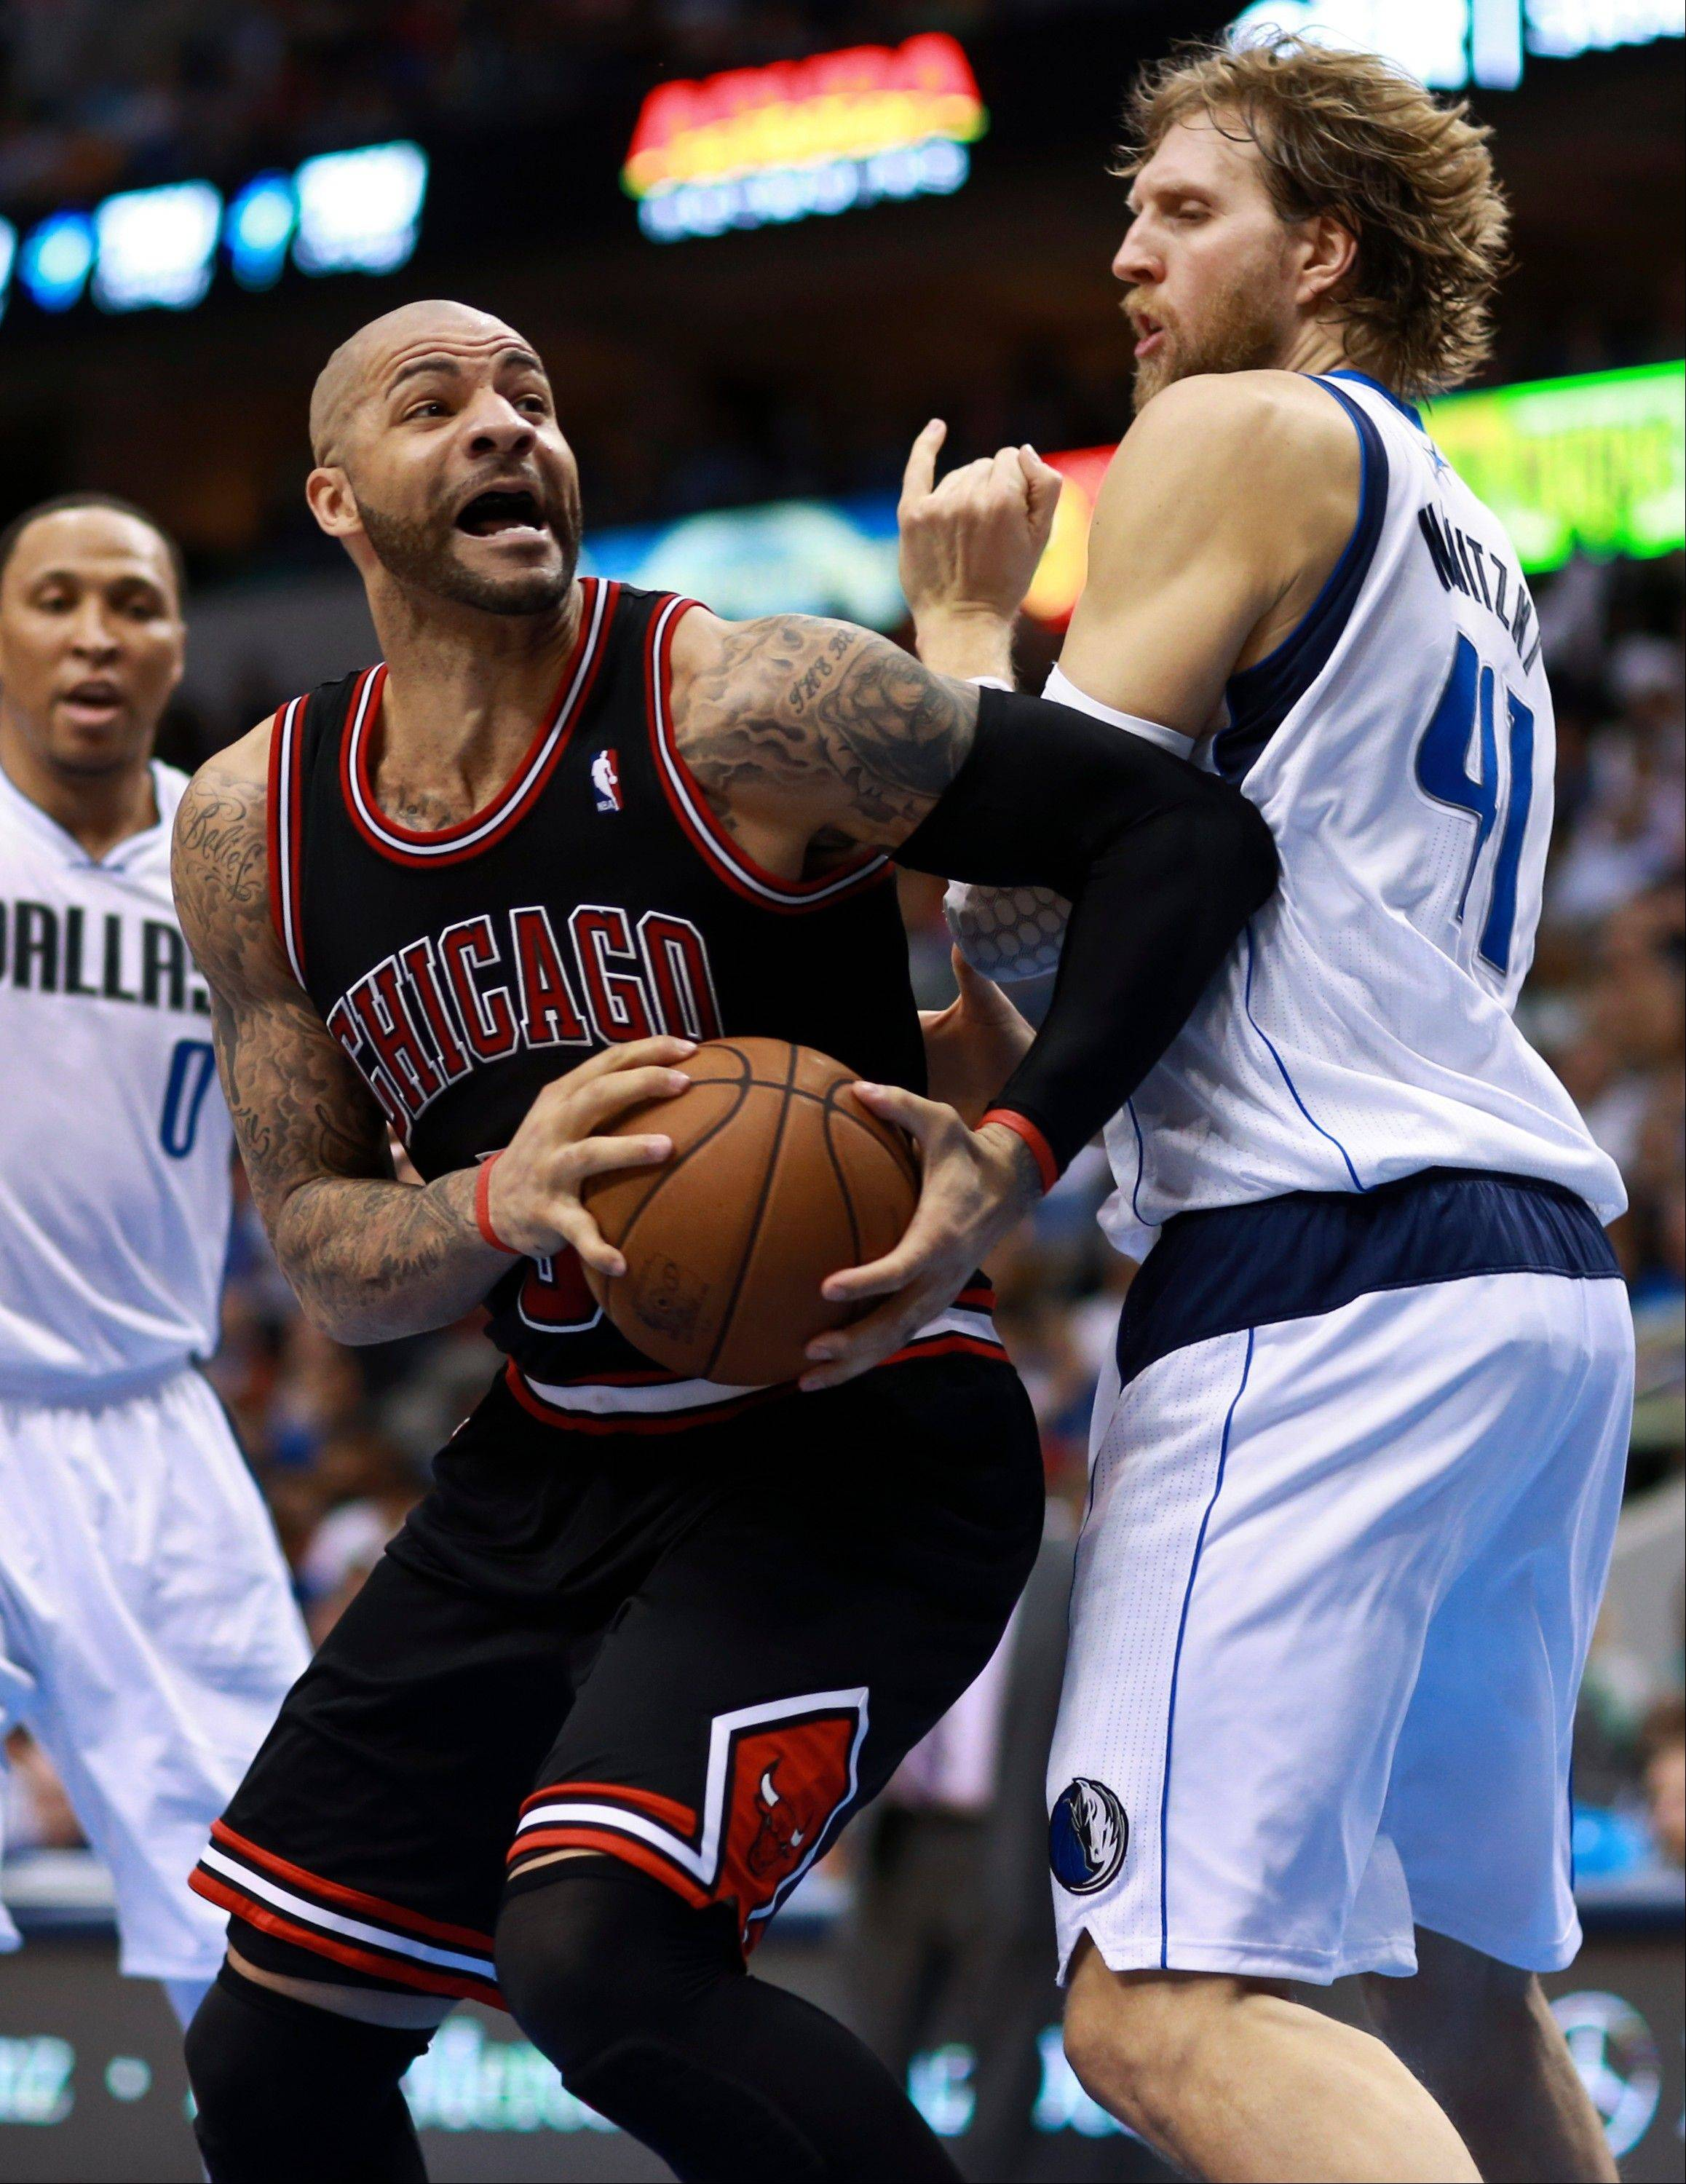 Chicago Bulls forward Carlos Boozer, center, is fouled by Dallas Mavericks forward Dirk Nowitzki (41), of Germany, under the net during the first half of an NBA basketball game, Saturday, March 30, 2013, in Dallas. Mavericks� Shawn Marion (0) is at left.